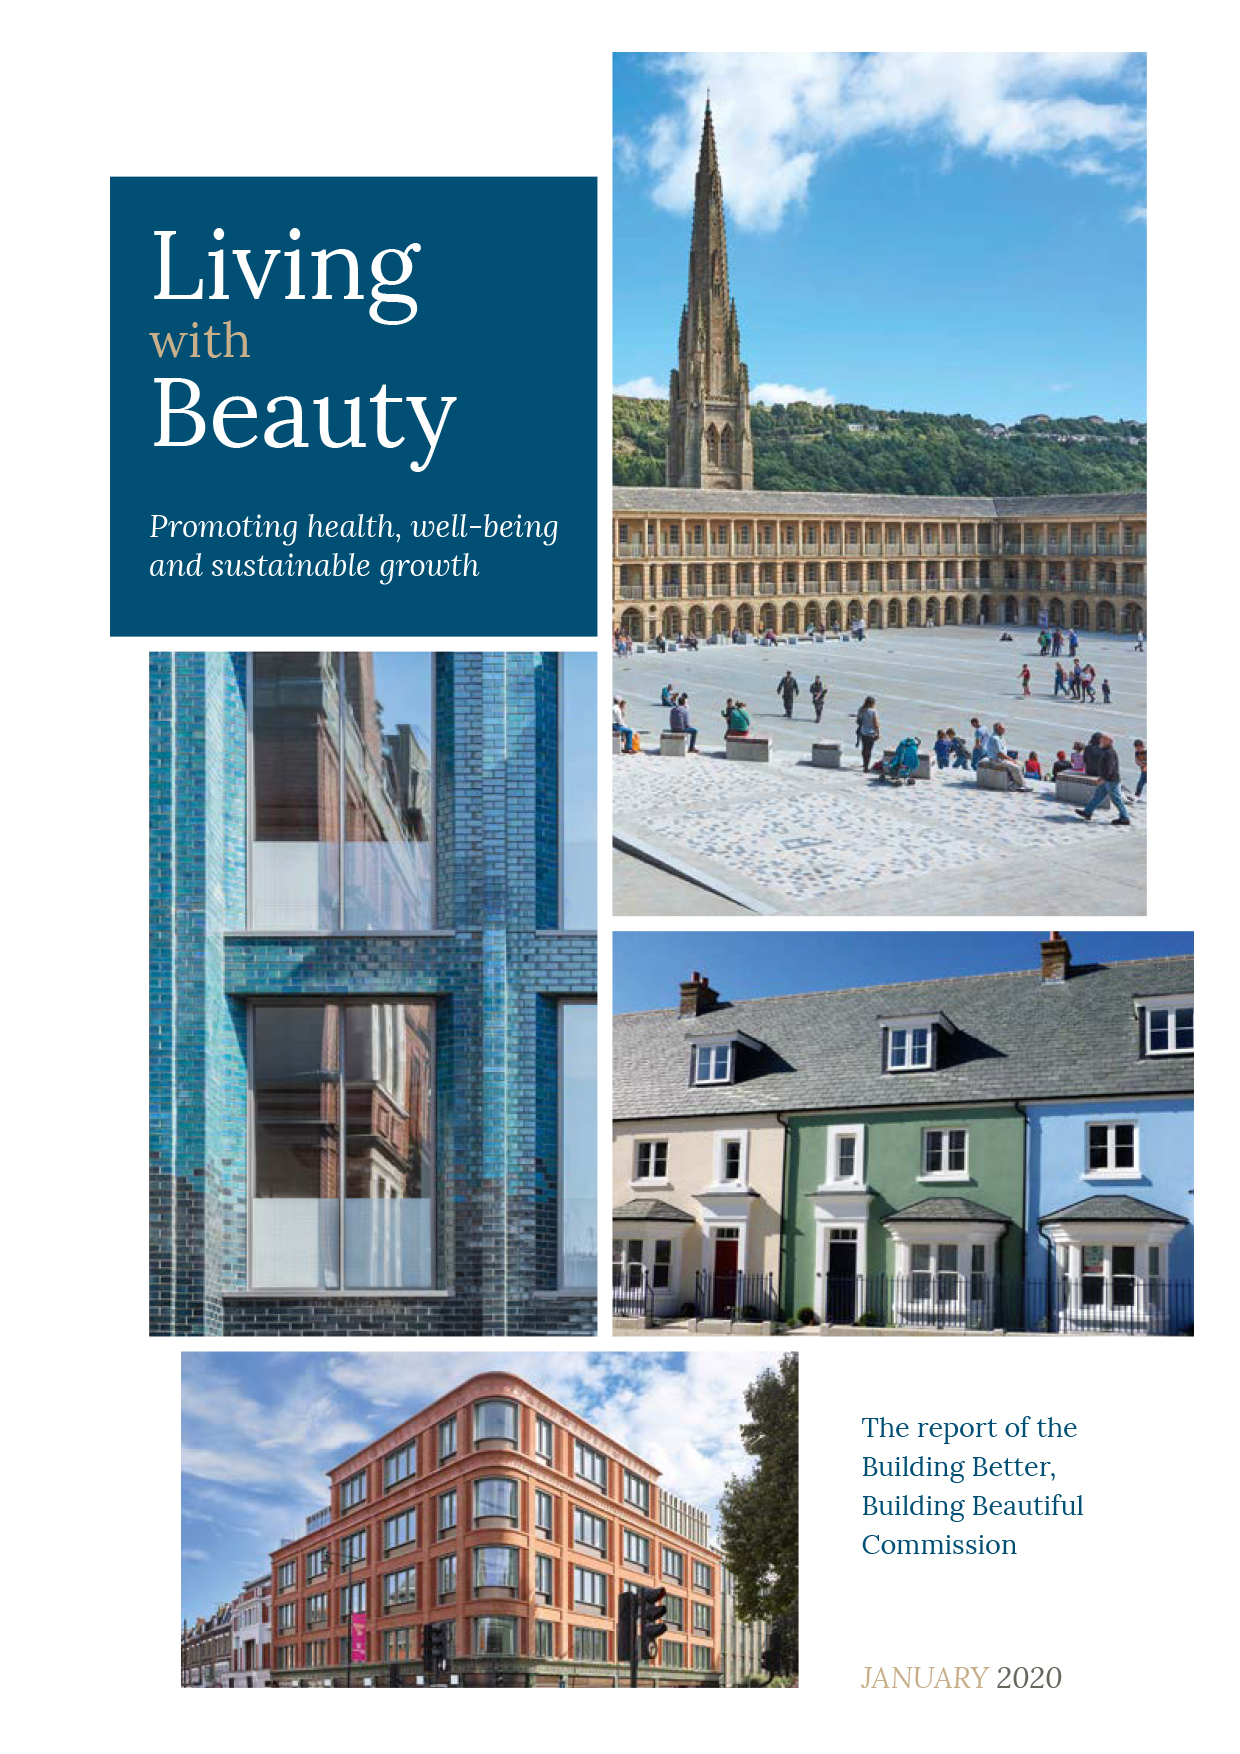 Living with beauty; promoting health, well-being and sustainable growth